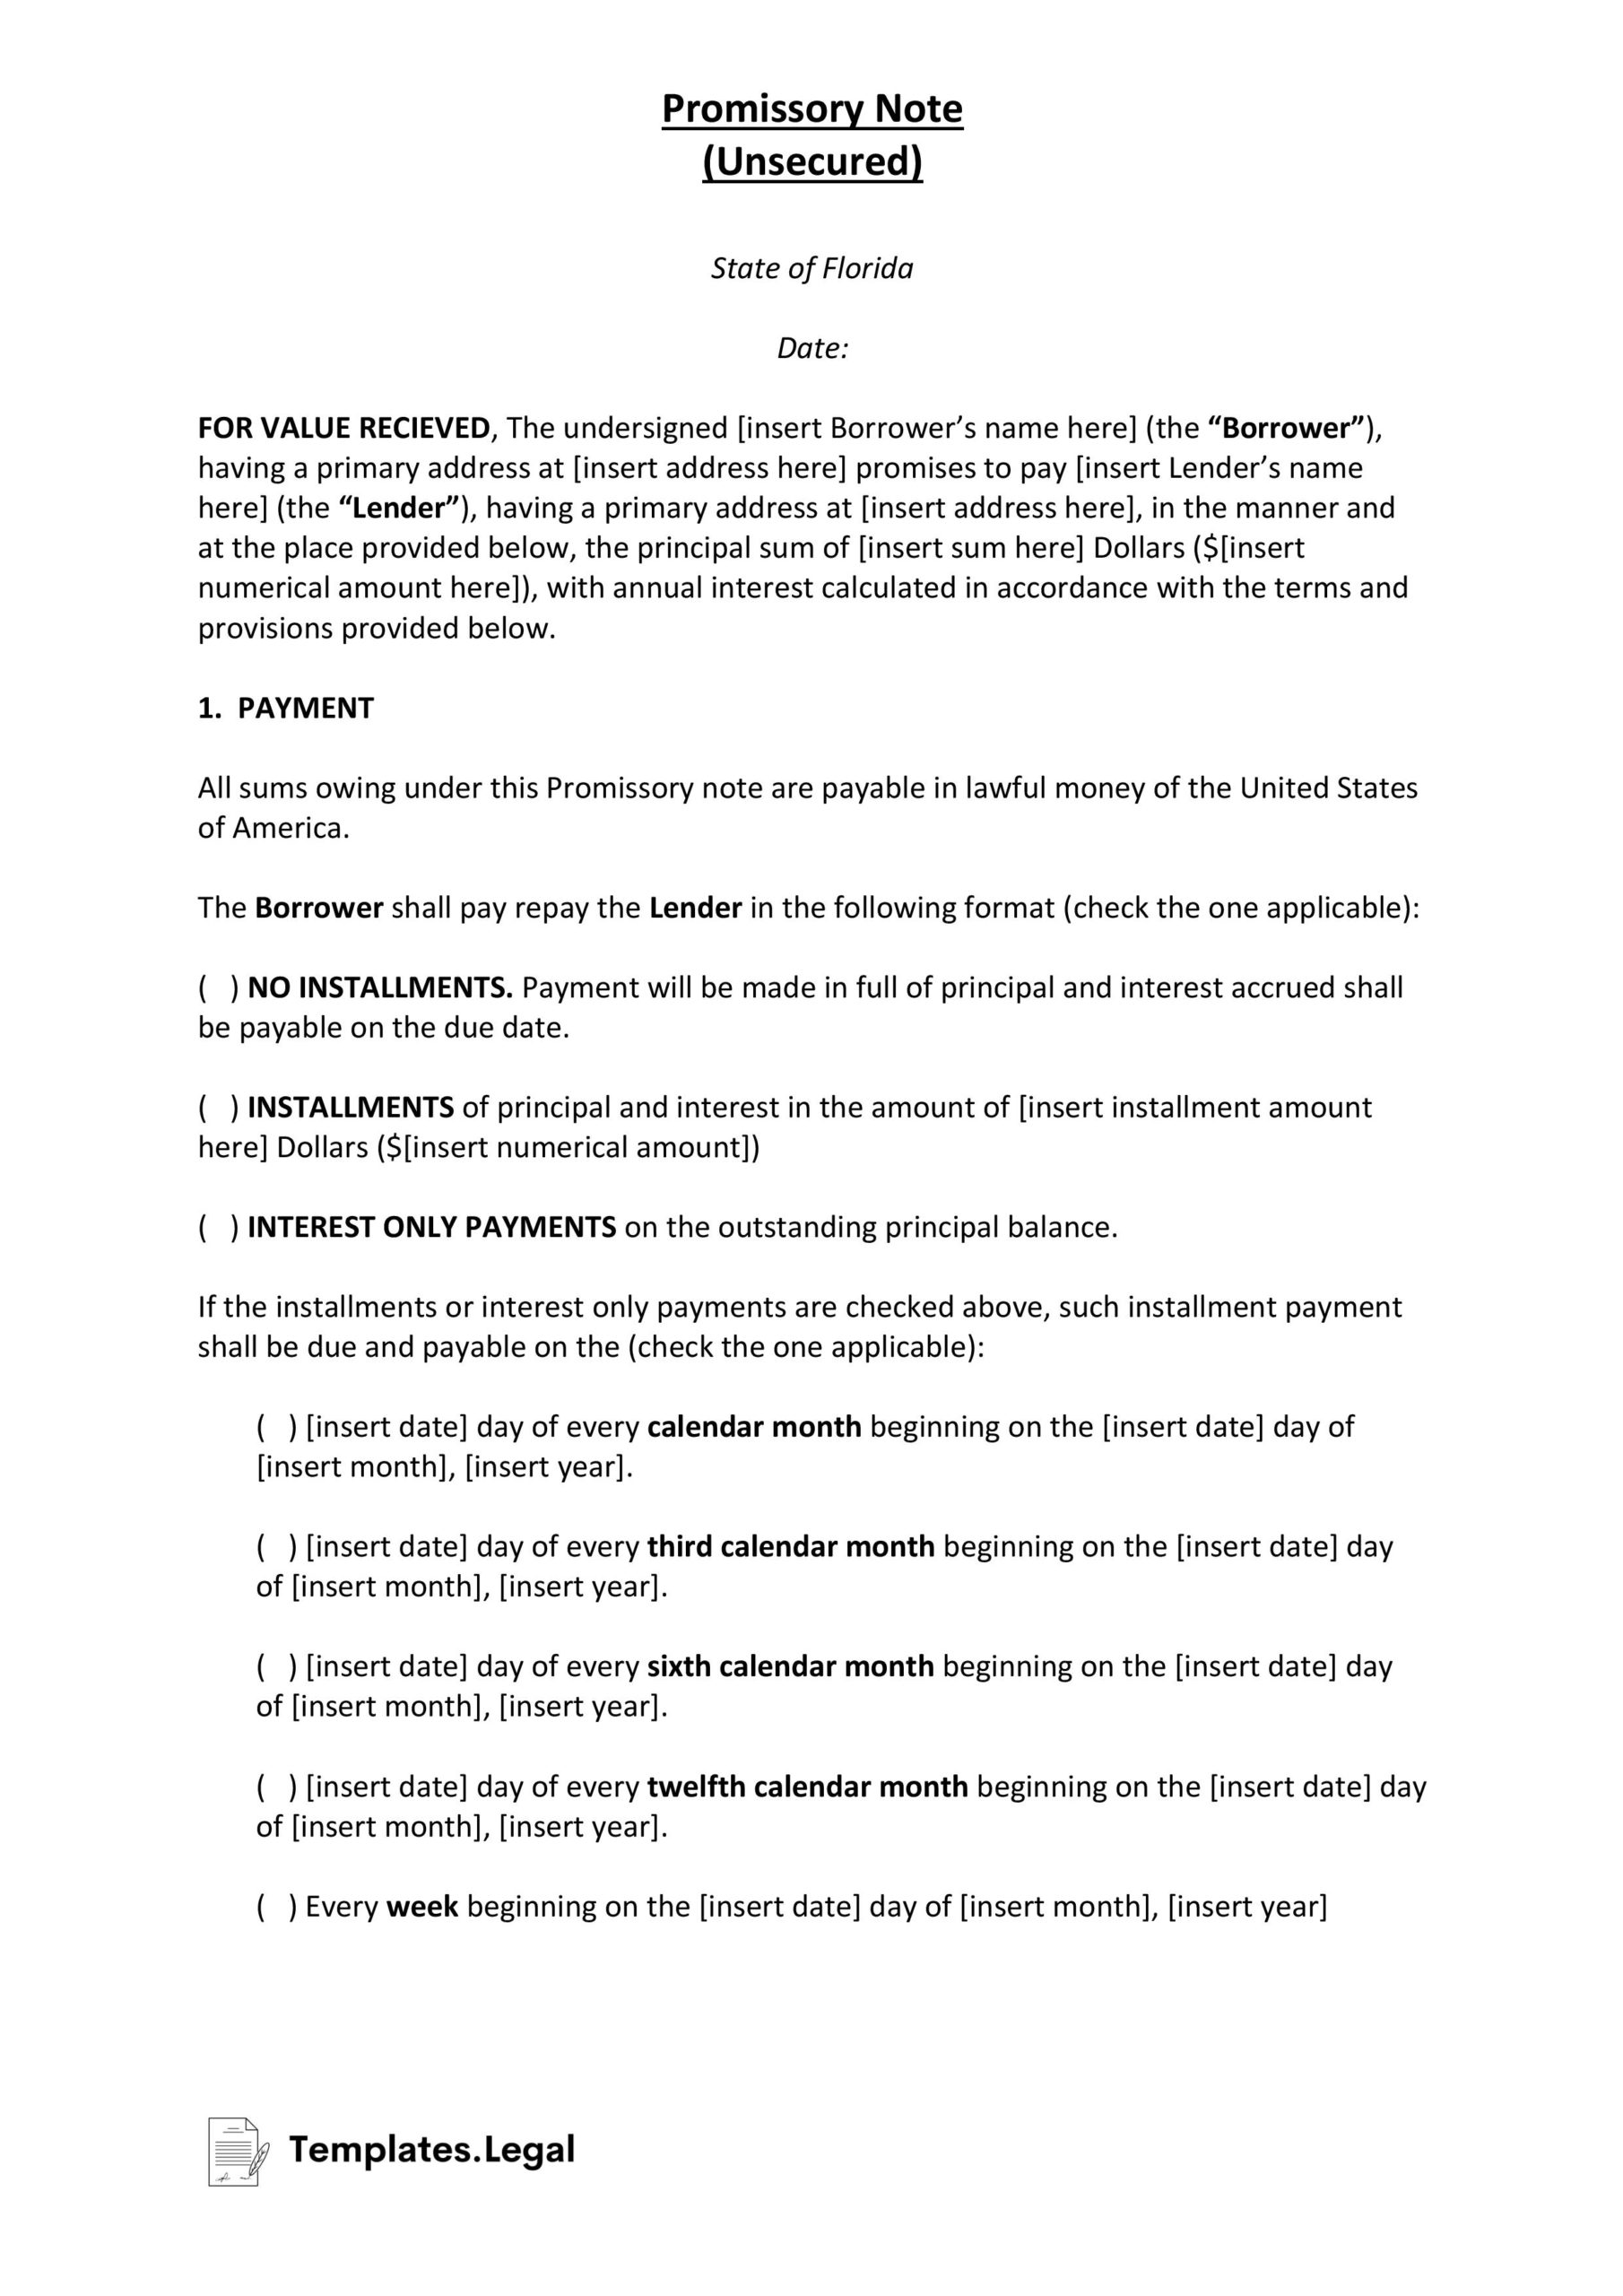 Florida Unsecured Promissory Note - Templates.Legal